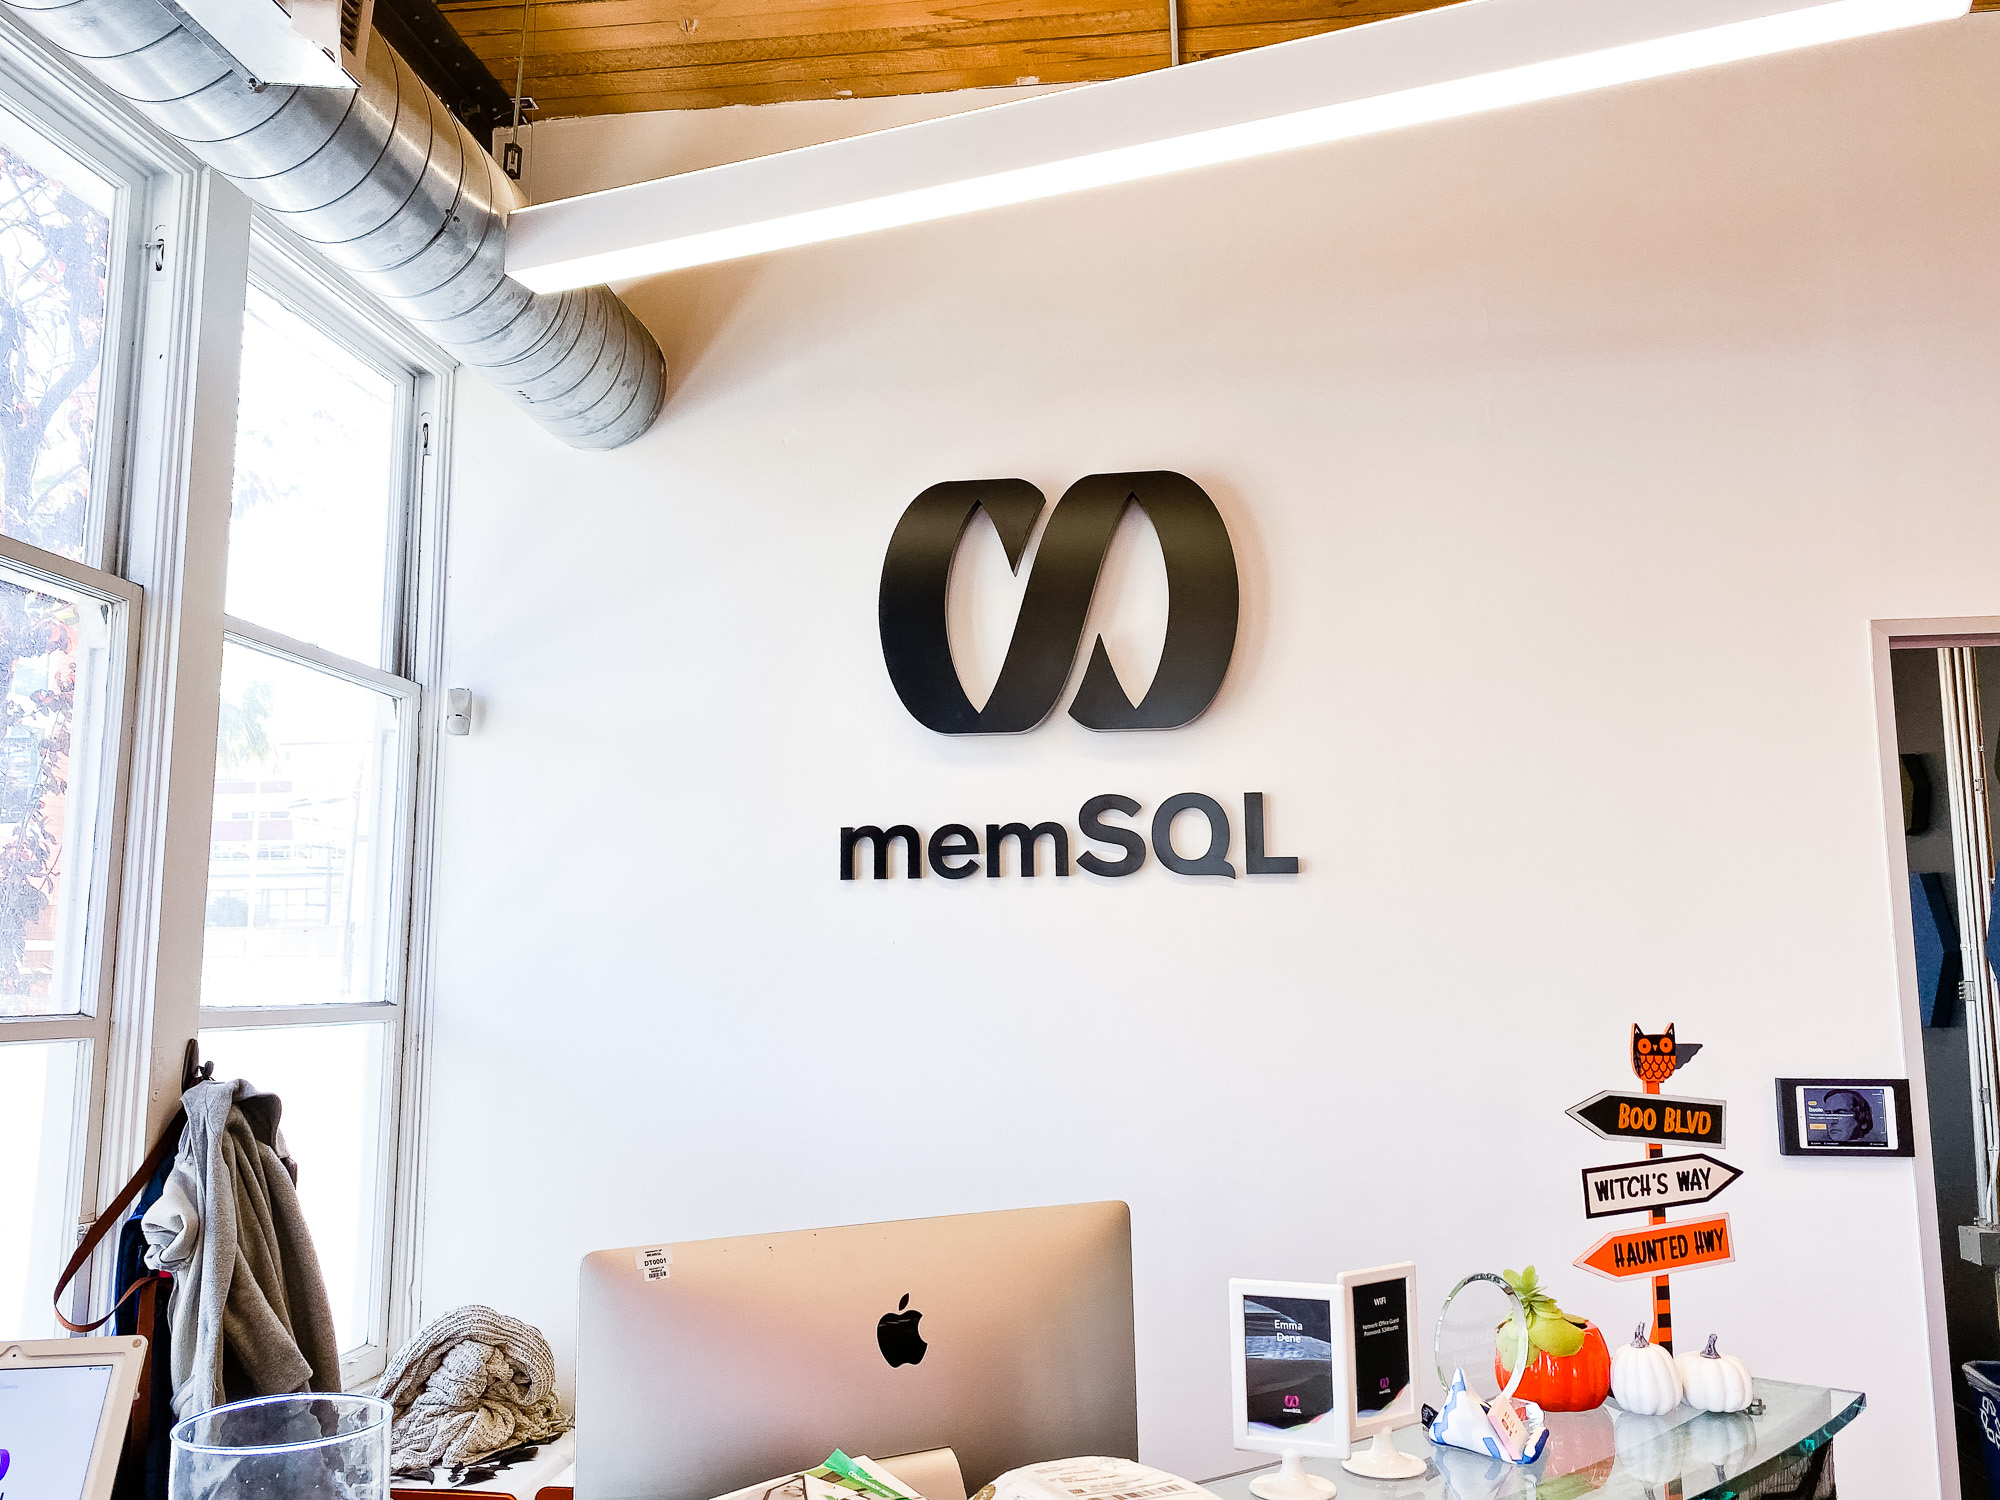 Illuminated black sign with back-lit purple lights for memSQL, a software company in San Francisco, California.